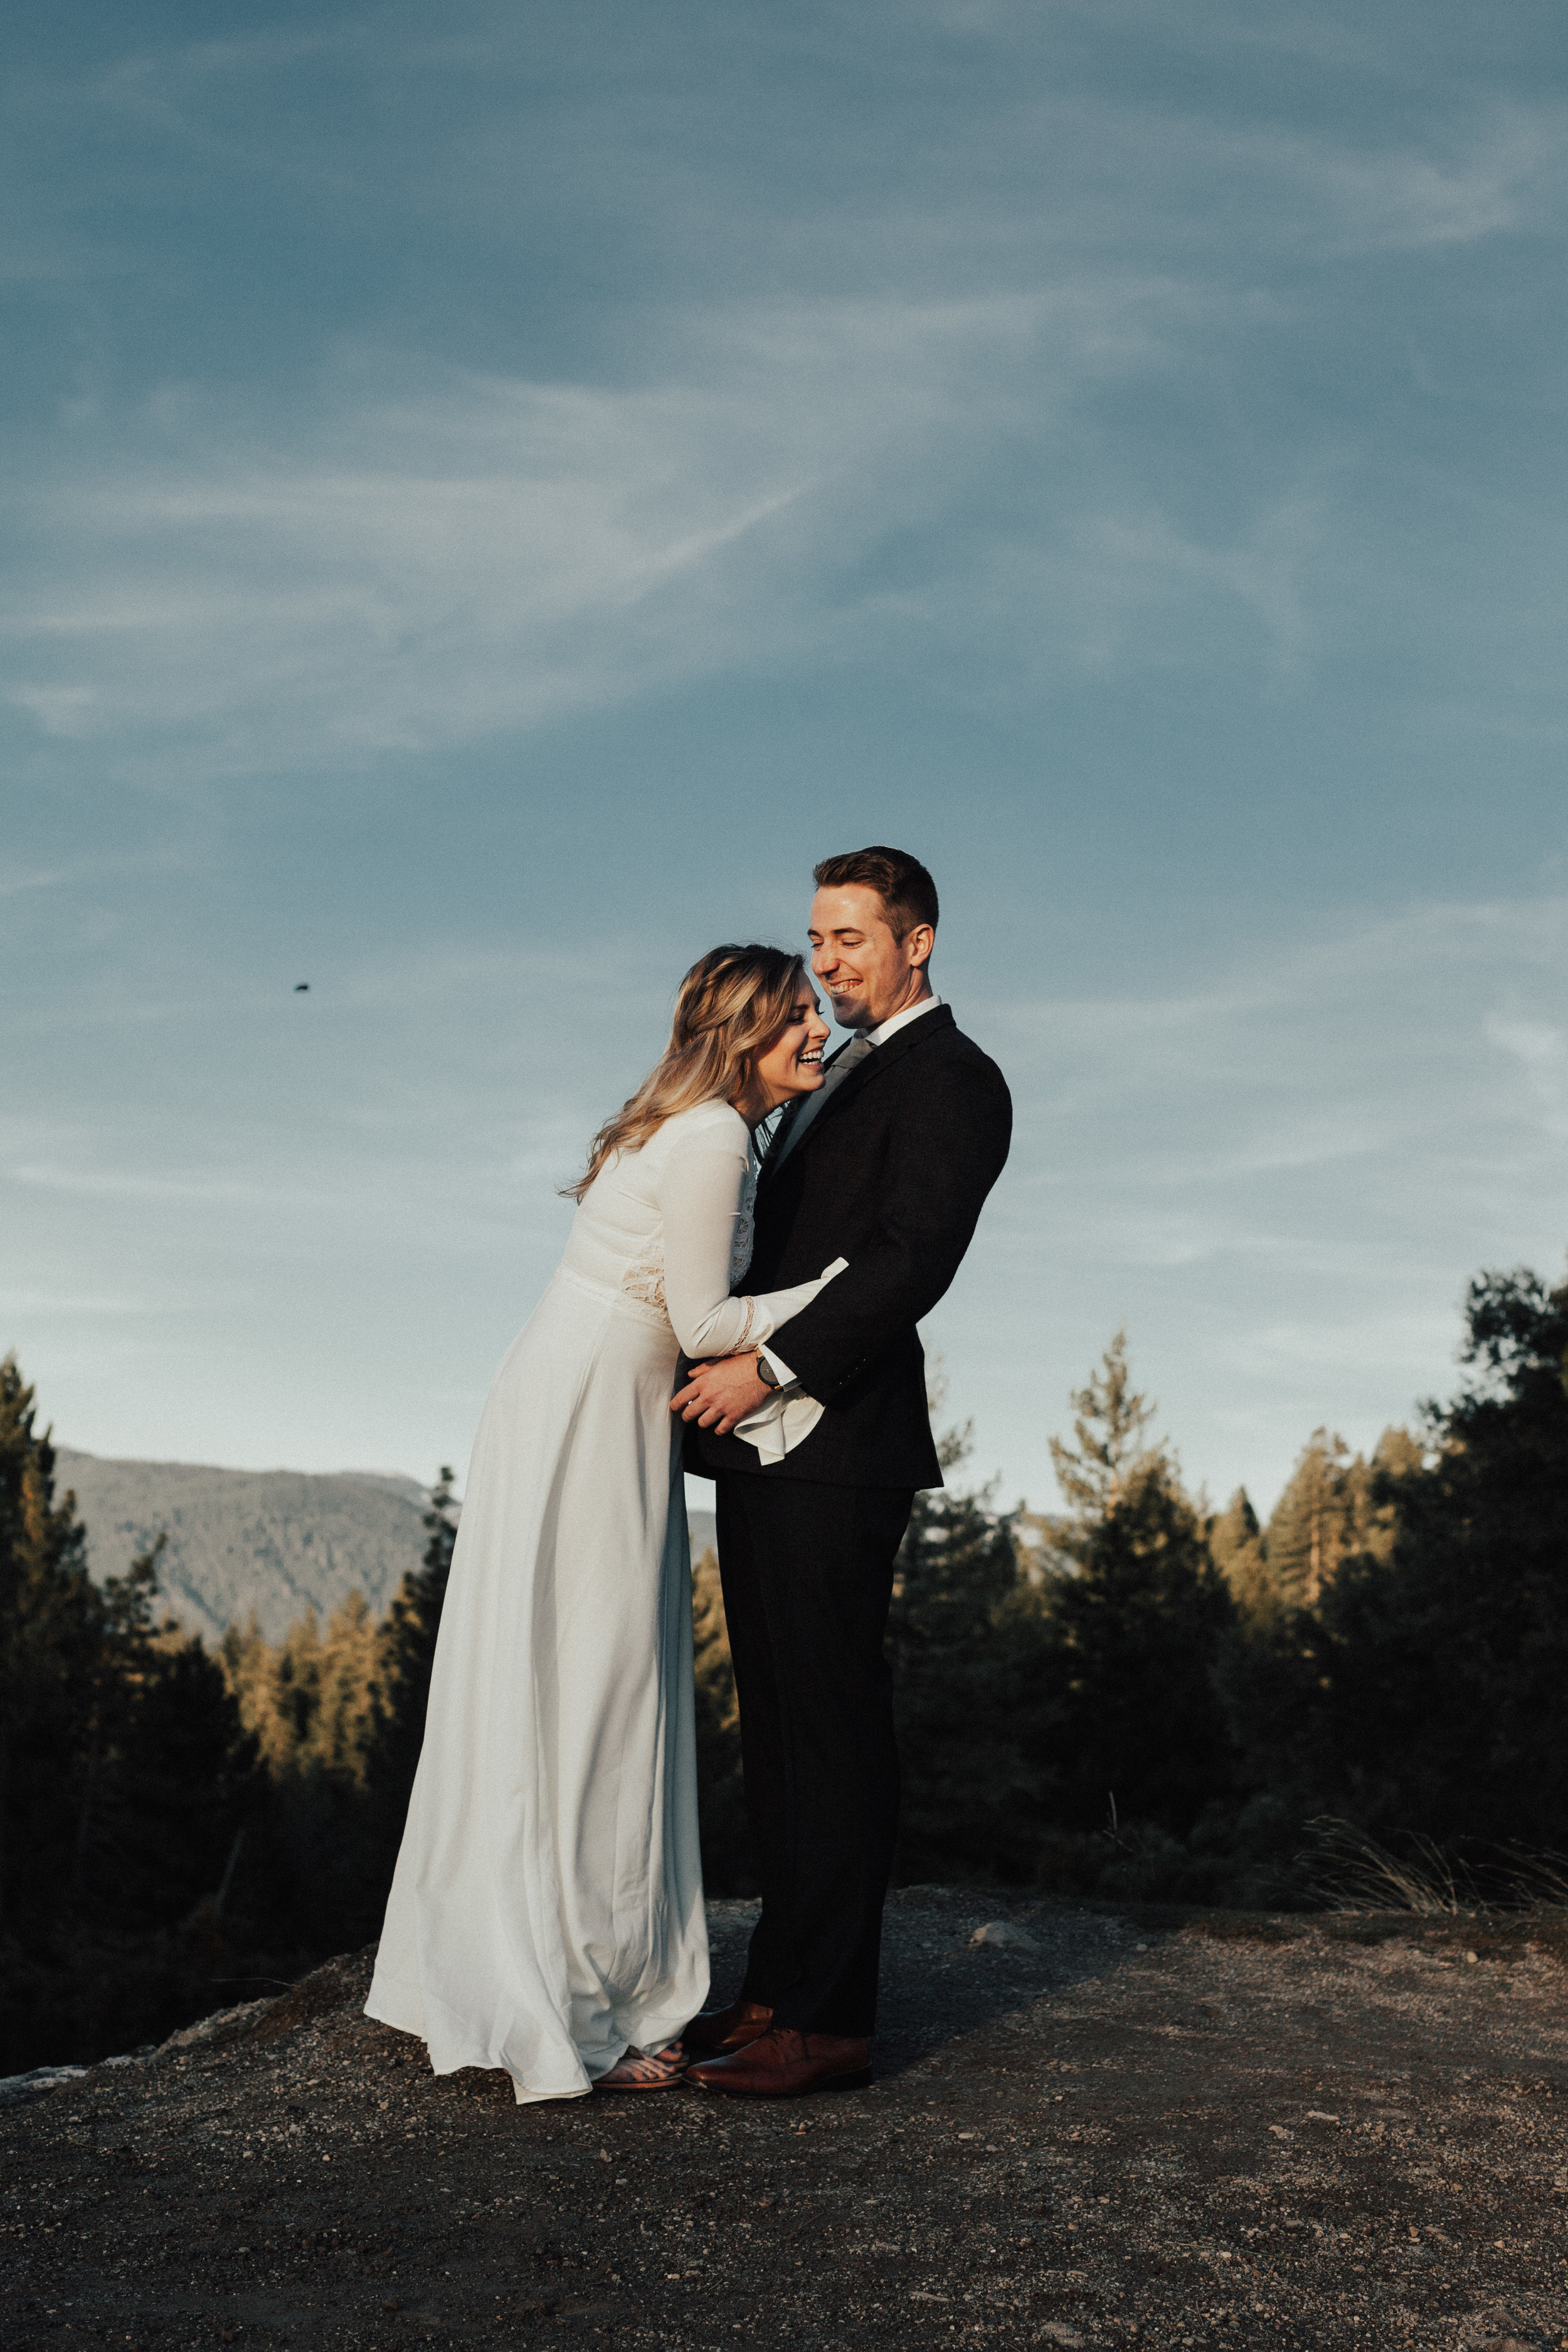 Bride and groom laughing together. They have just eloped and are estatic to spend the rest of their lives together!